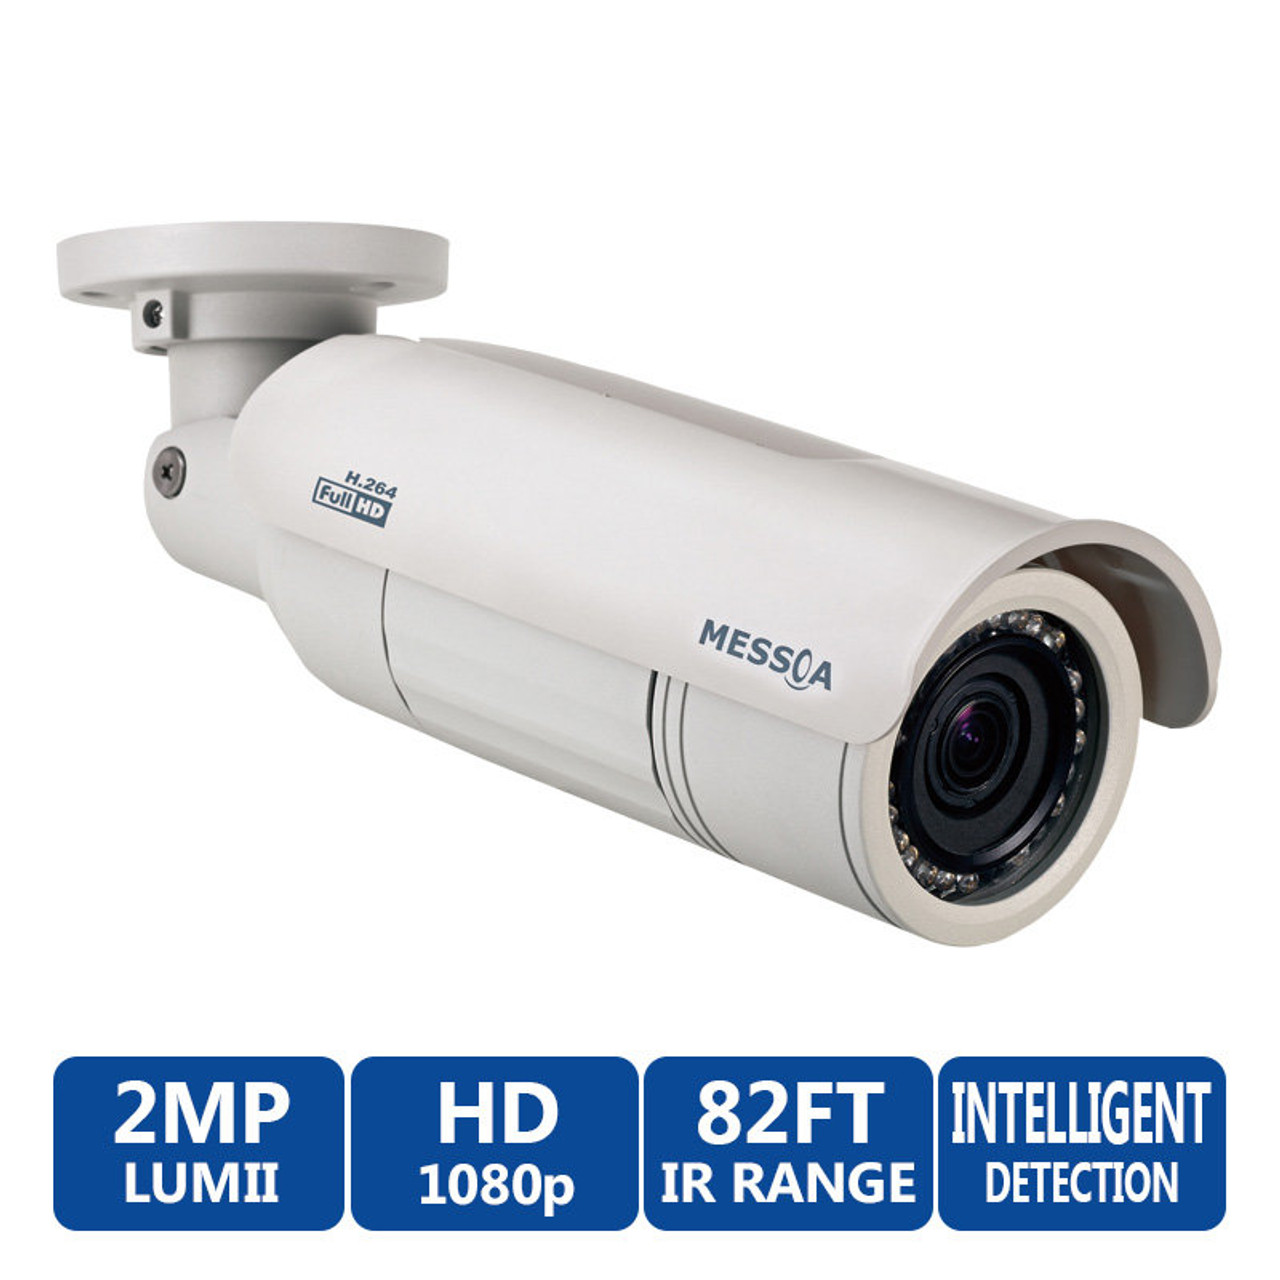 MESSOA NCR870S IP CAMERA WINDOWS 8 DRIVERS DOWNLOAD (2019)